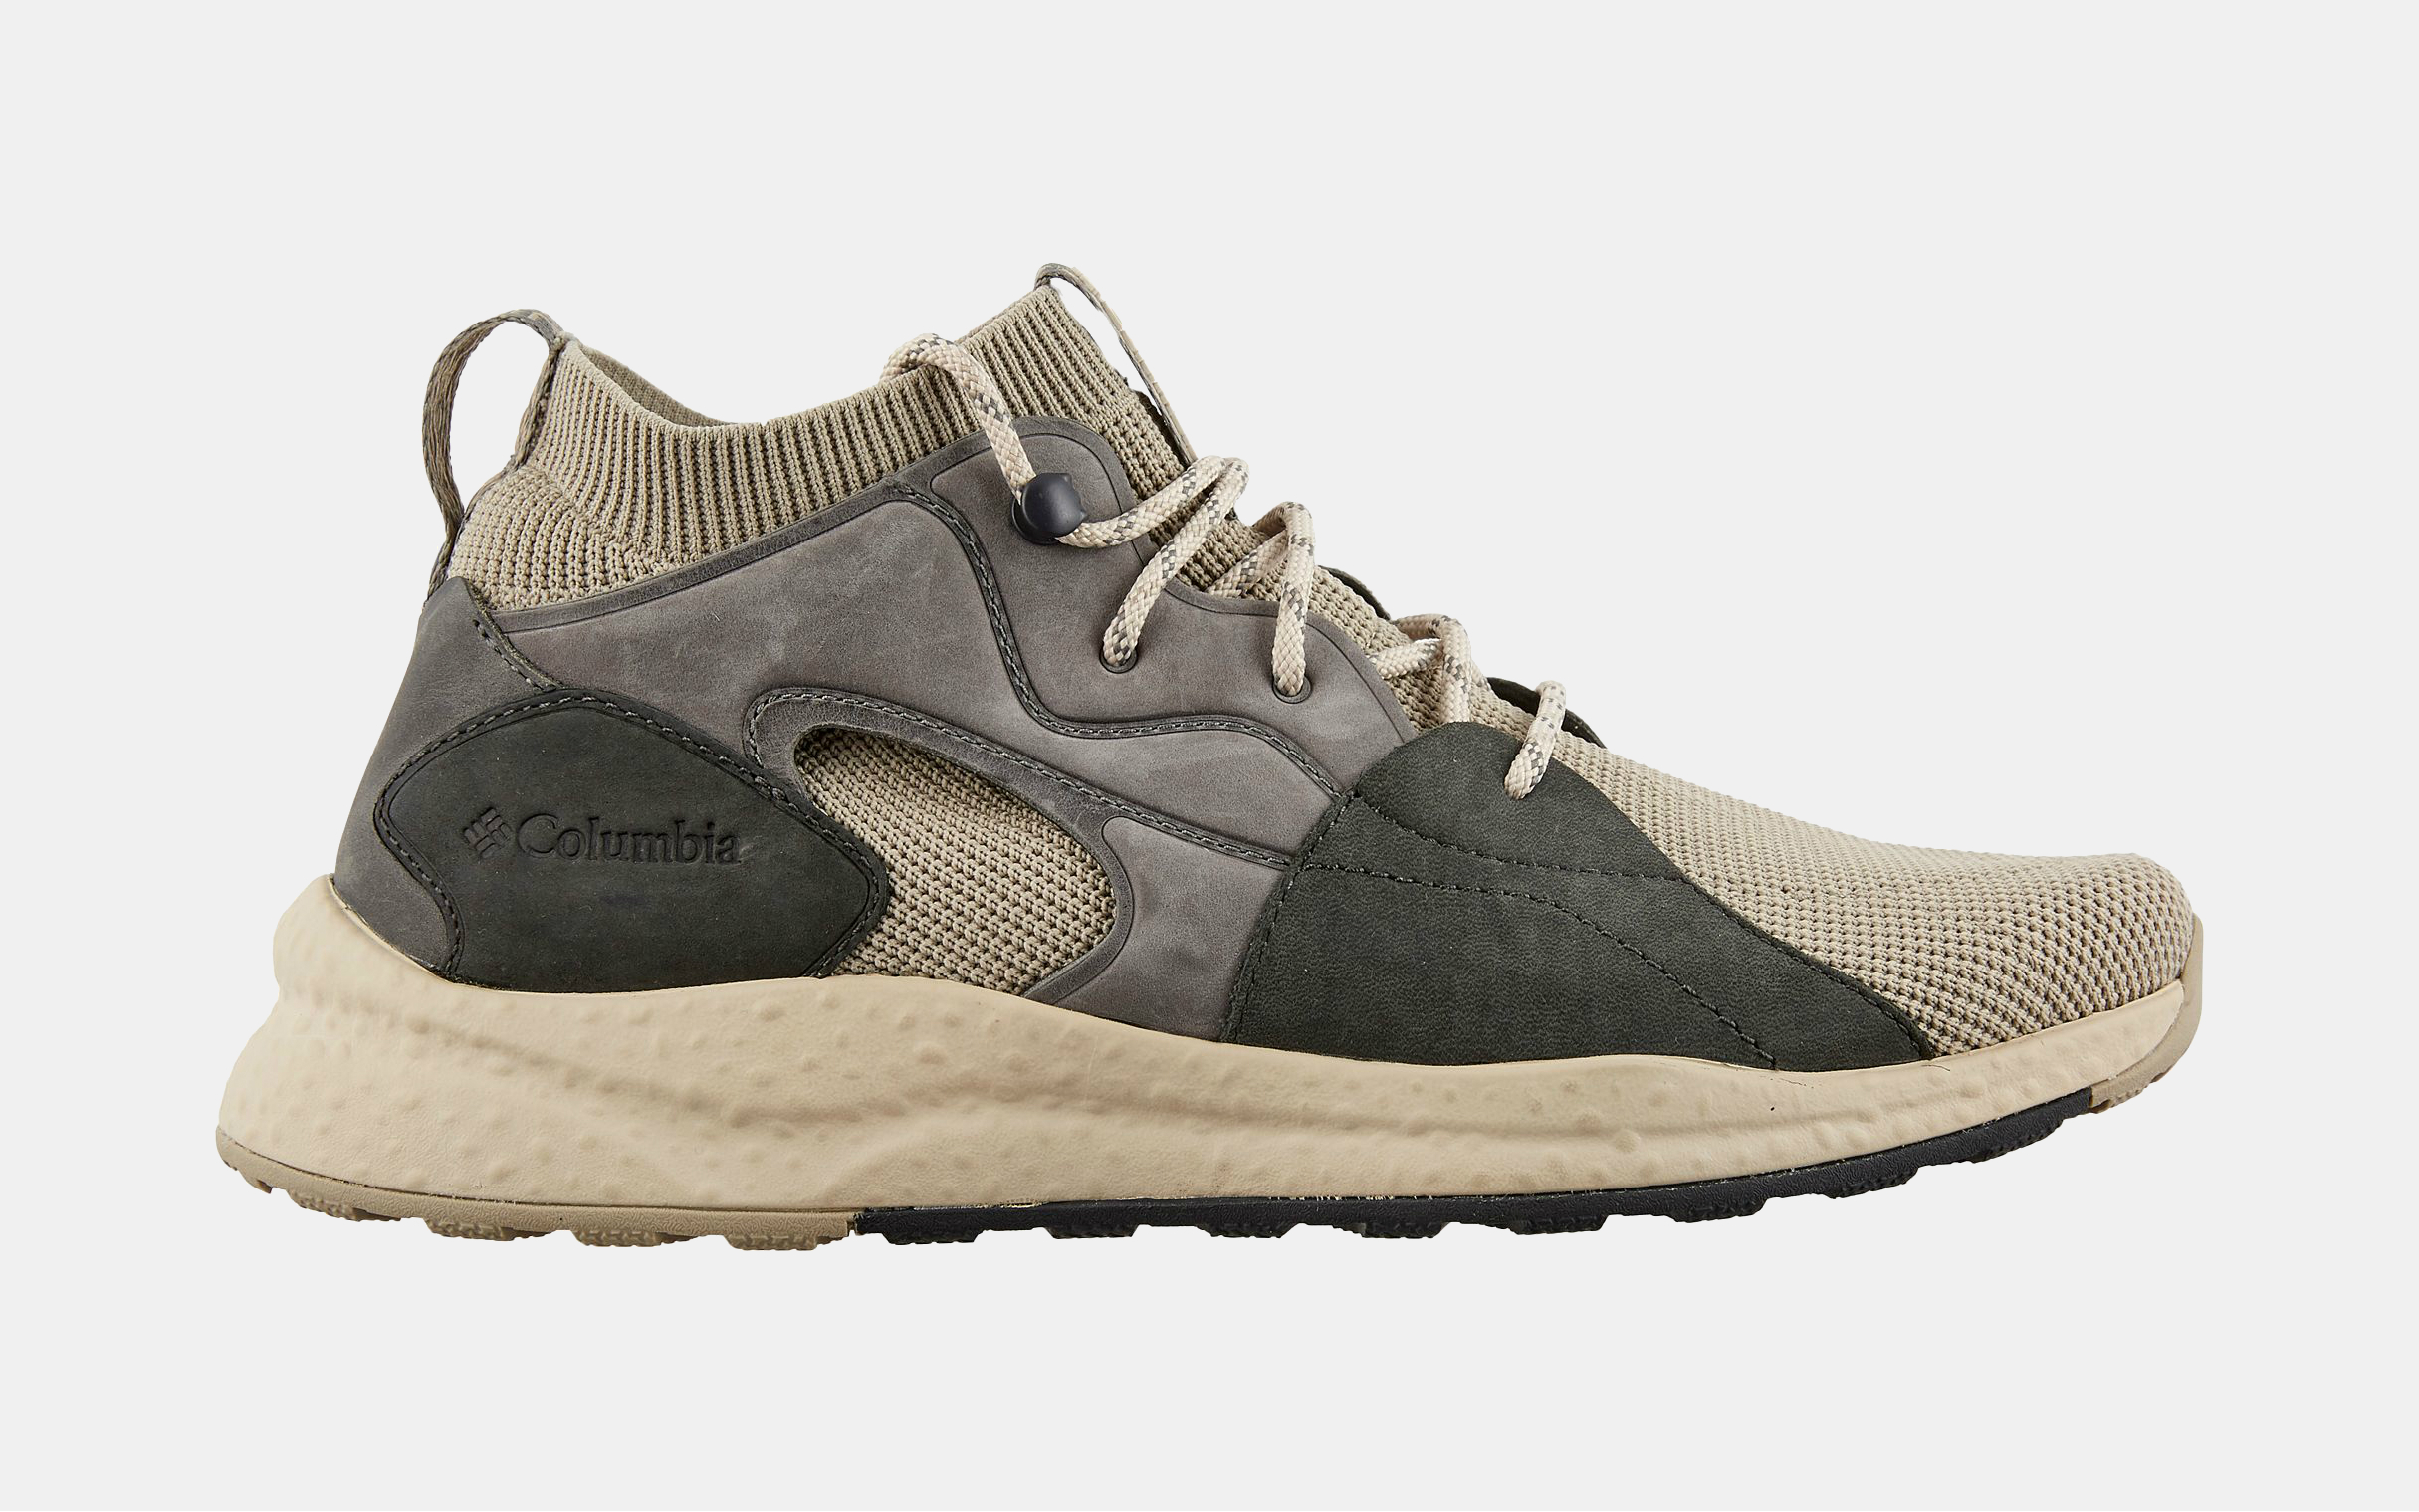 Columbia SH/FT OutDry Mid Shoes